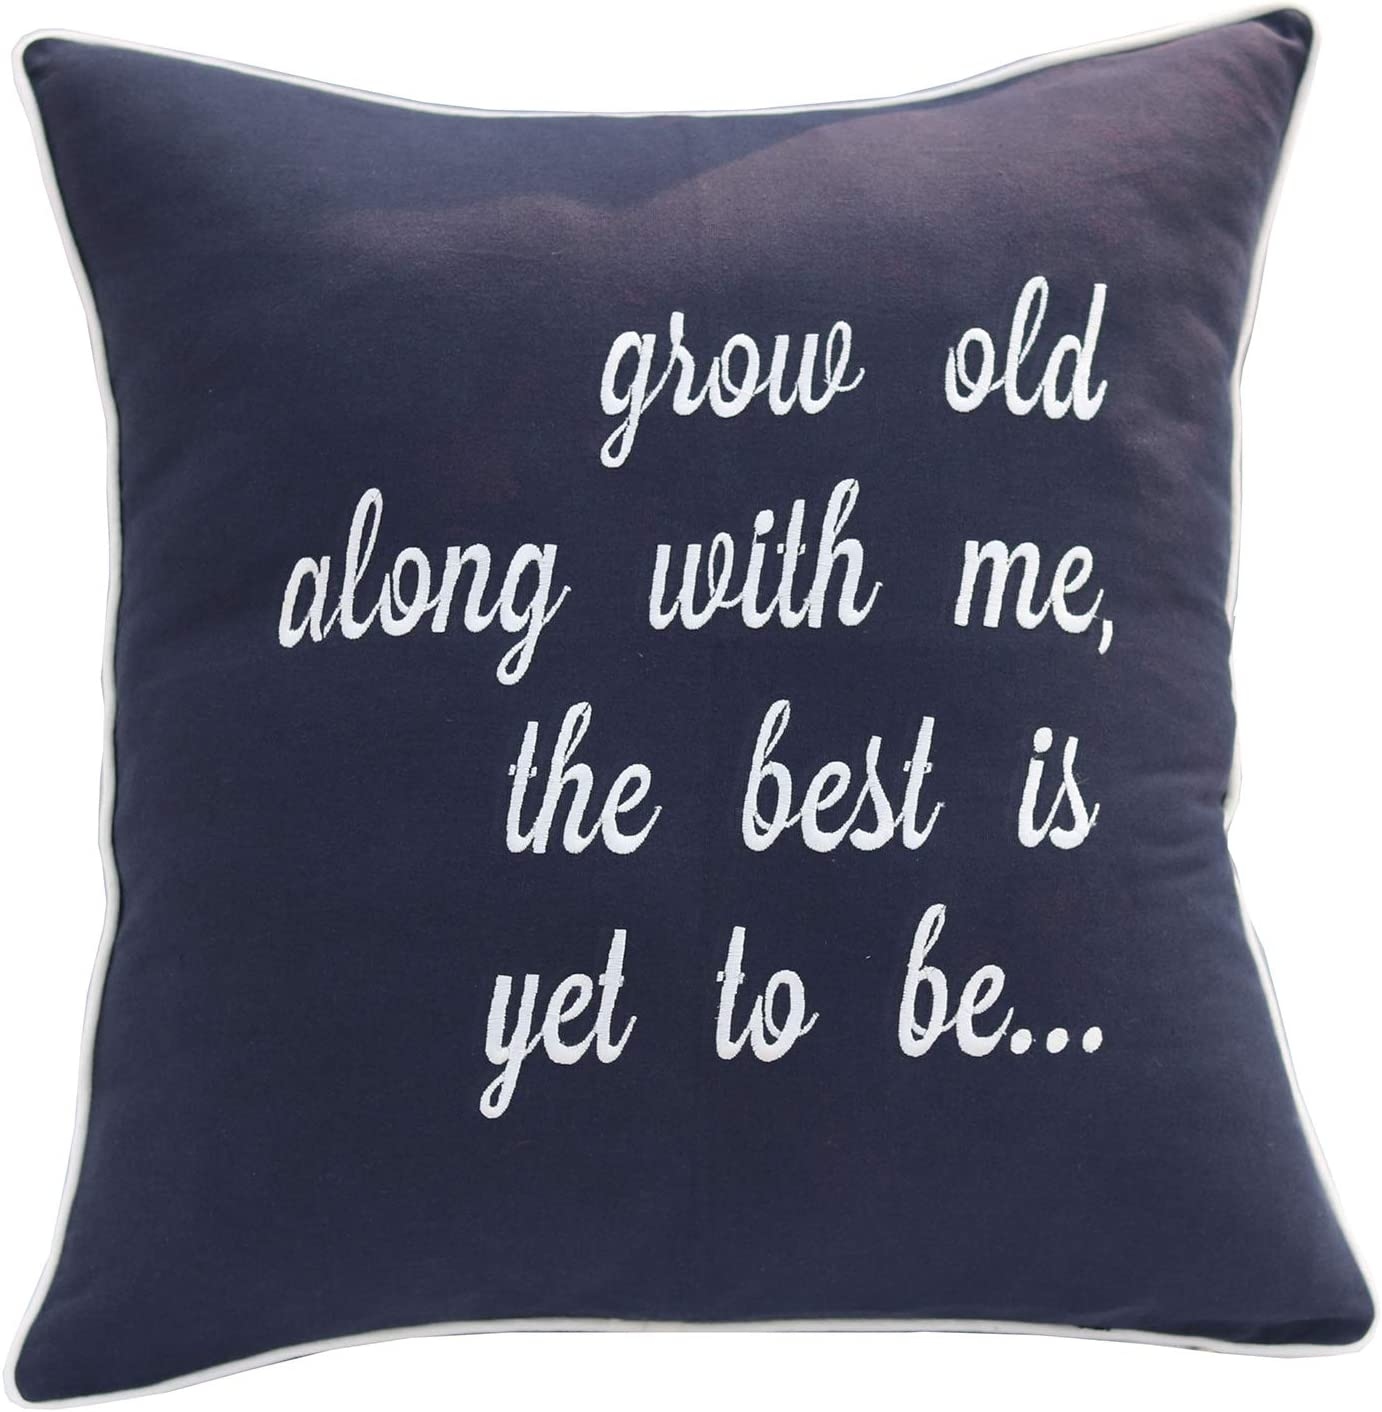 YugTex Grow Old Along with Me Cotton Embroidered Decorative Square Accent Throw Pillow Cover - Couple Bedroom Decor, Valentine Gift - 18x18 Inches, Navy Blue